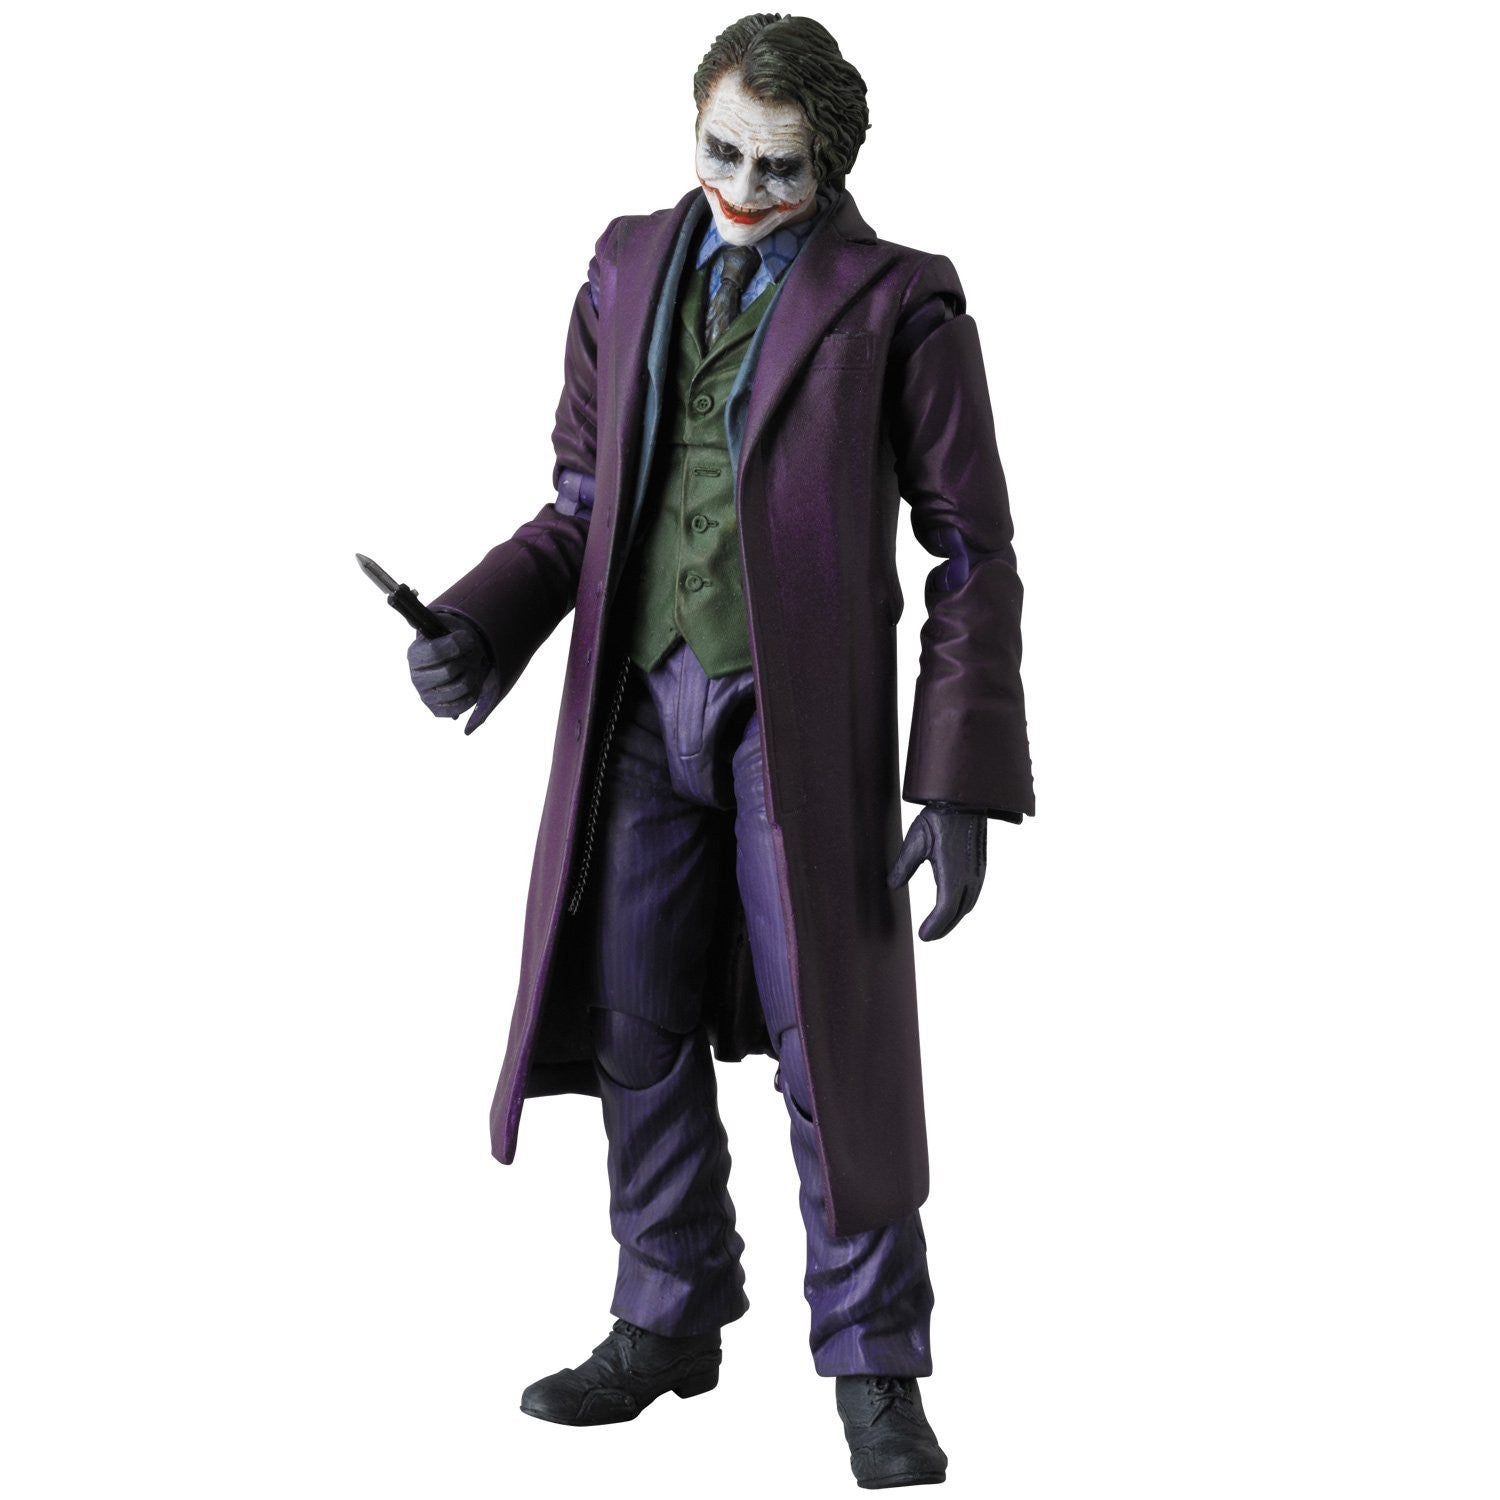 Dark Knight Joker PX Mafex by Medicom-Medicom- www.superherotoystore.com-Action Figure - 1